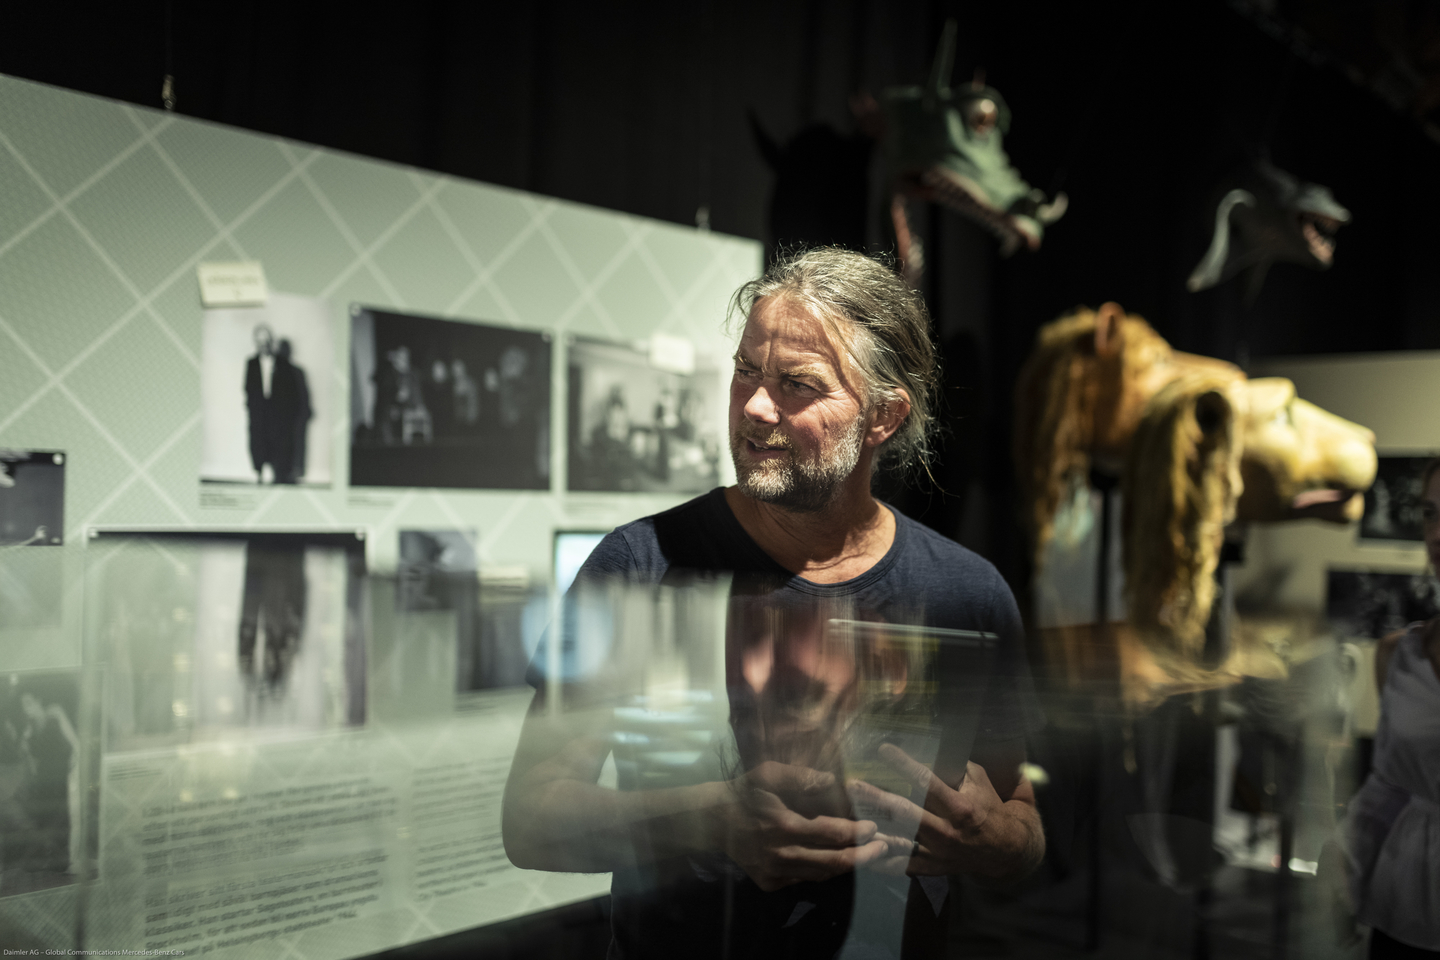 Exploration Day brought registrants to different Stockholm museums, including the Scenkonstmuseet (Swedish Museum of Performing Arts) and its special Ingmar Bergman exhibit. Photo by Teymur Madjderey/Daimler AG